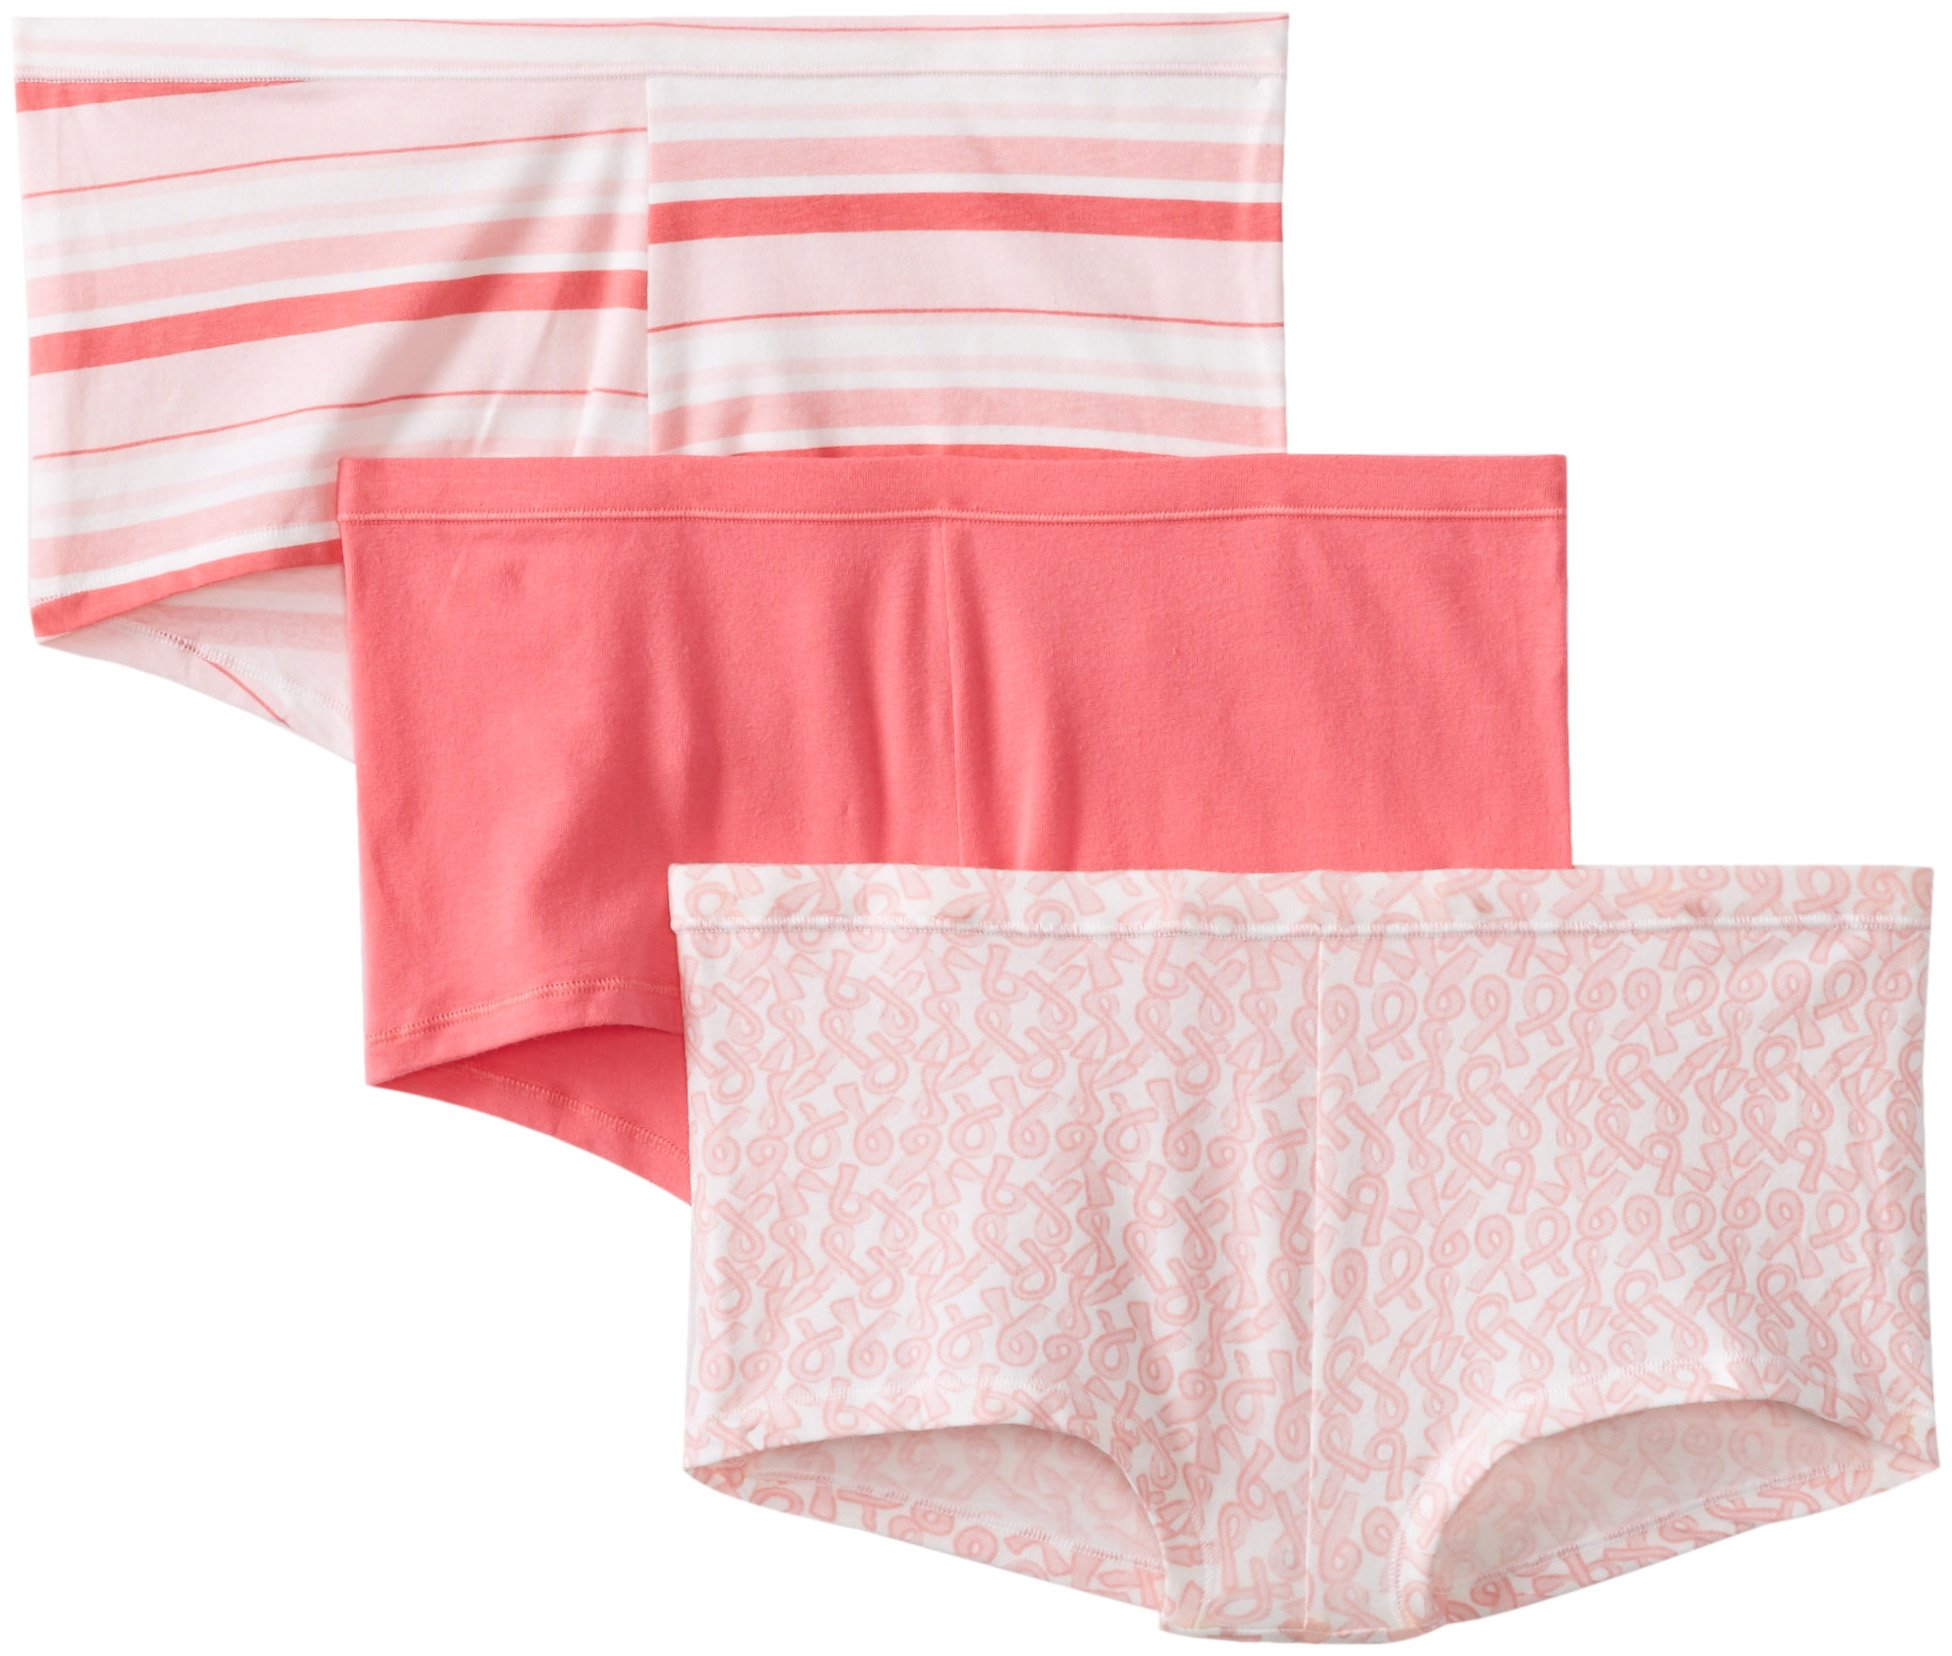 Hanes Women's Comfortsoft Cotton Stretch Boy Brief (Pack of 3)(assorted colors)